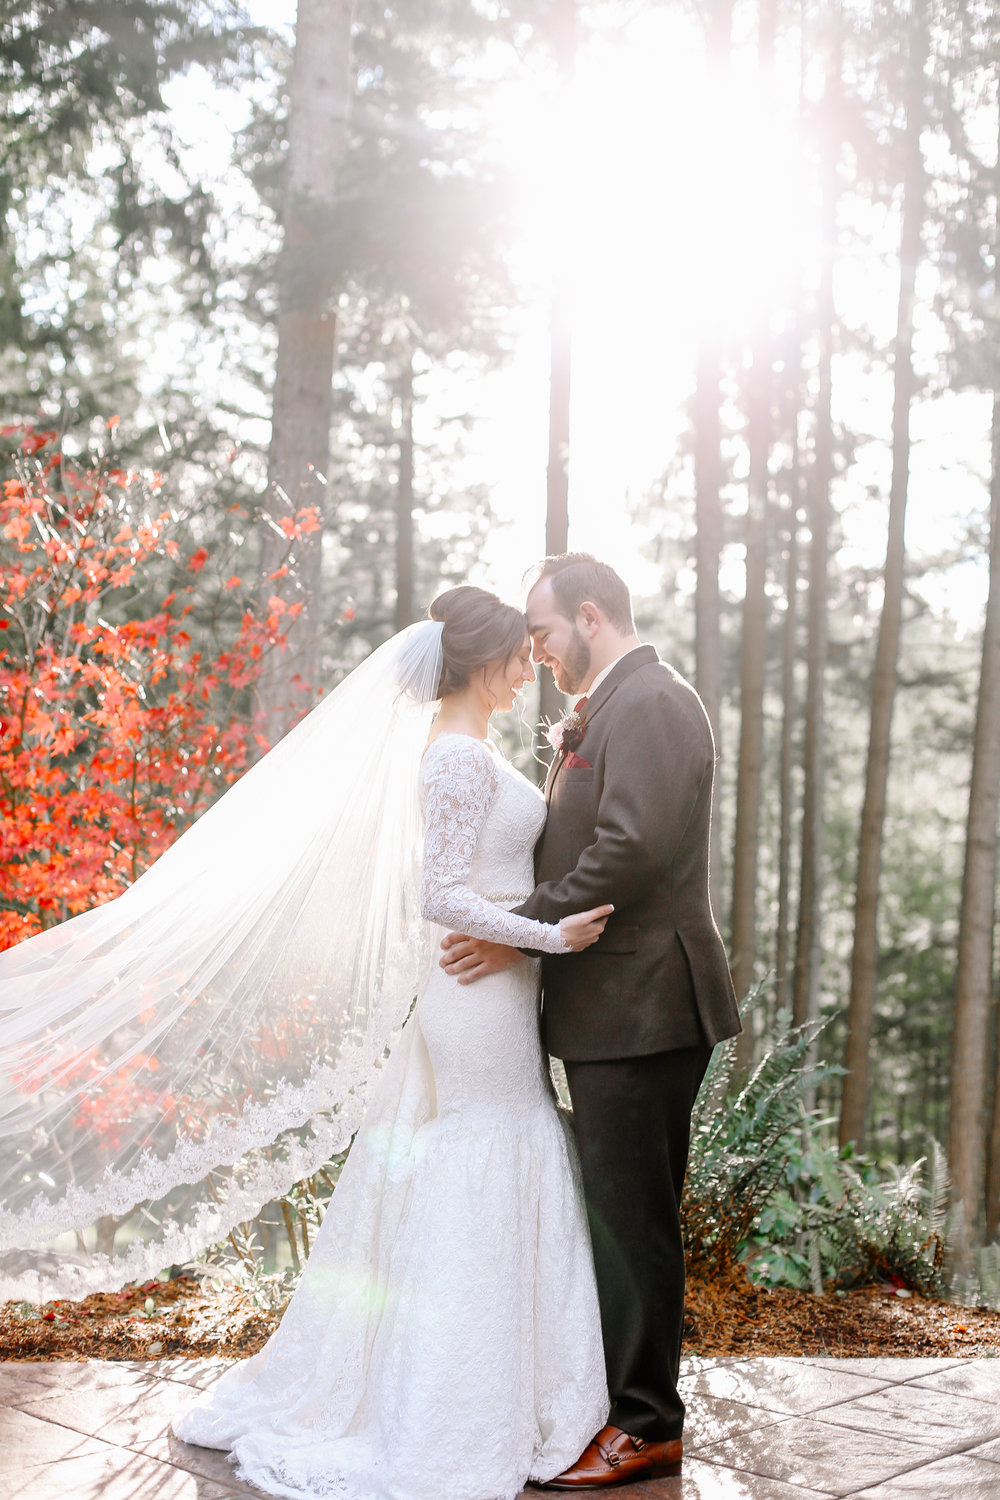 Manu and Laura - Portland Wedding Photographer - 35.jpg